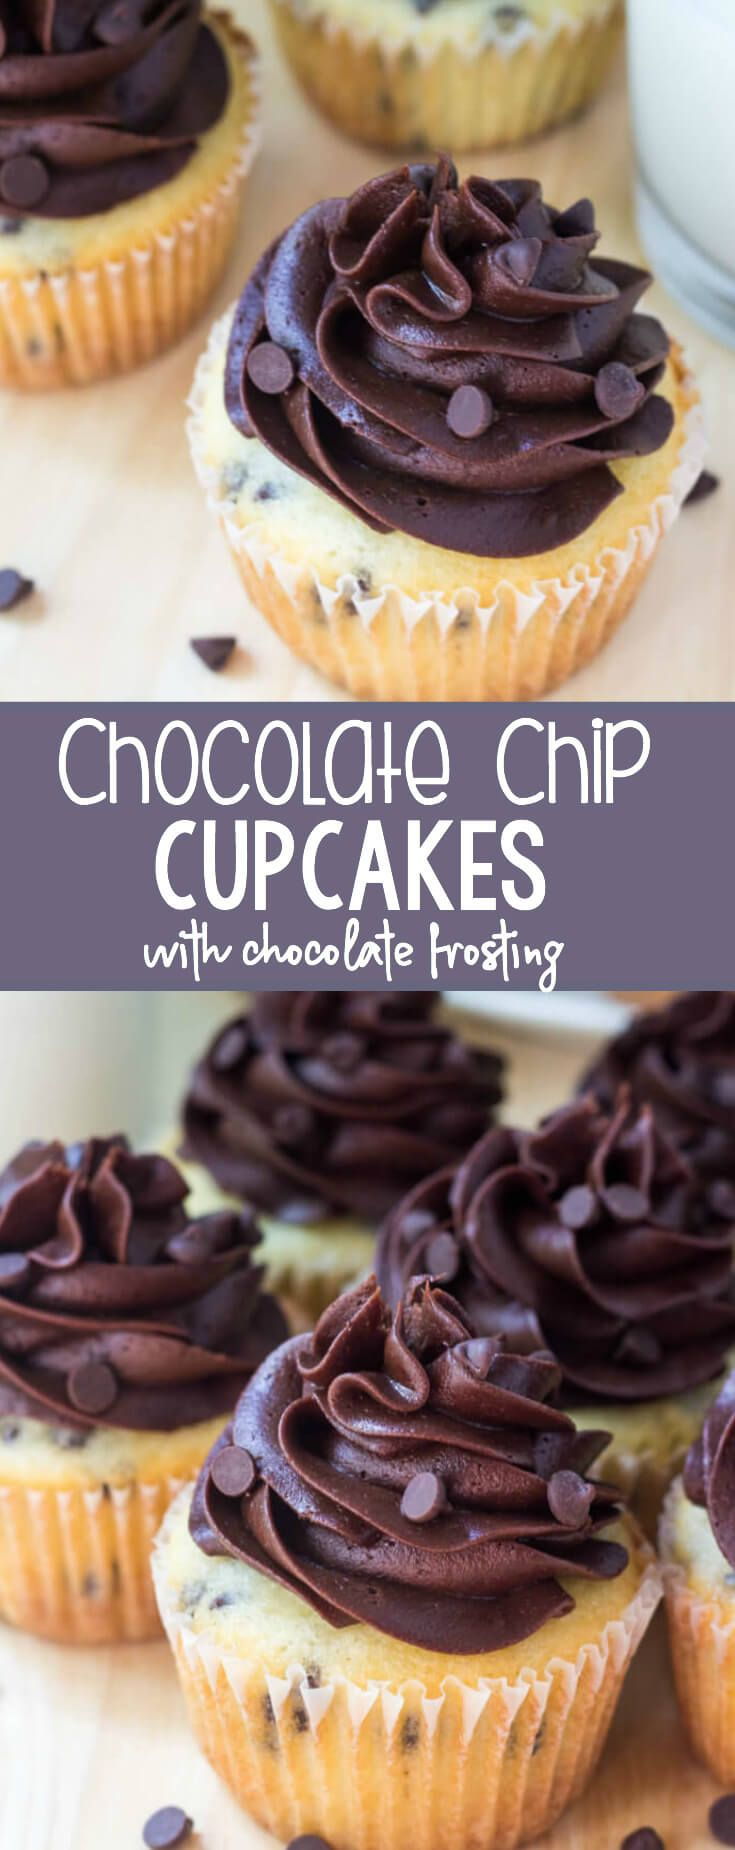 Chocolate Chip Cupcakes with Chocolate Frosting